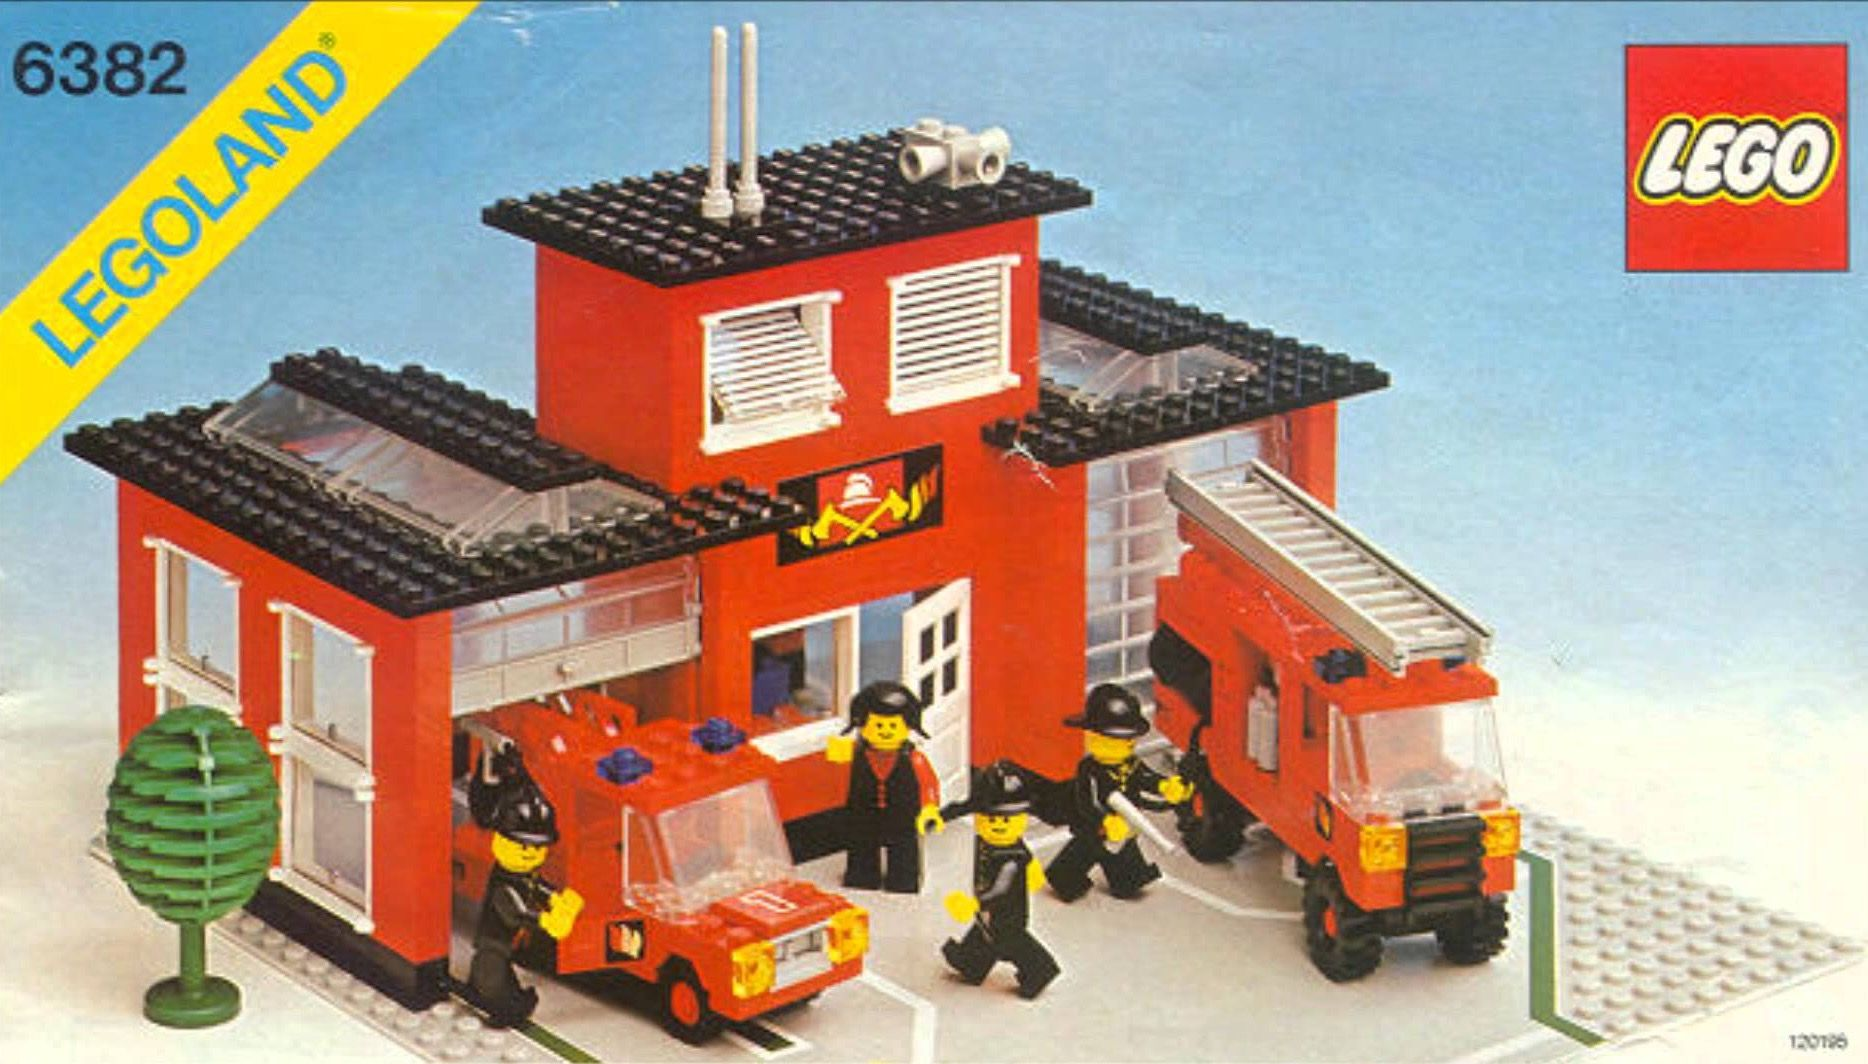 Pin By Tofer On Lego Sets Pinterest Lego